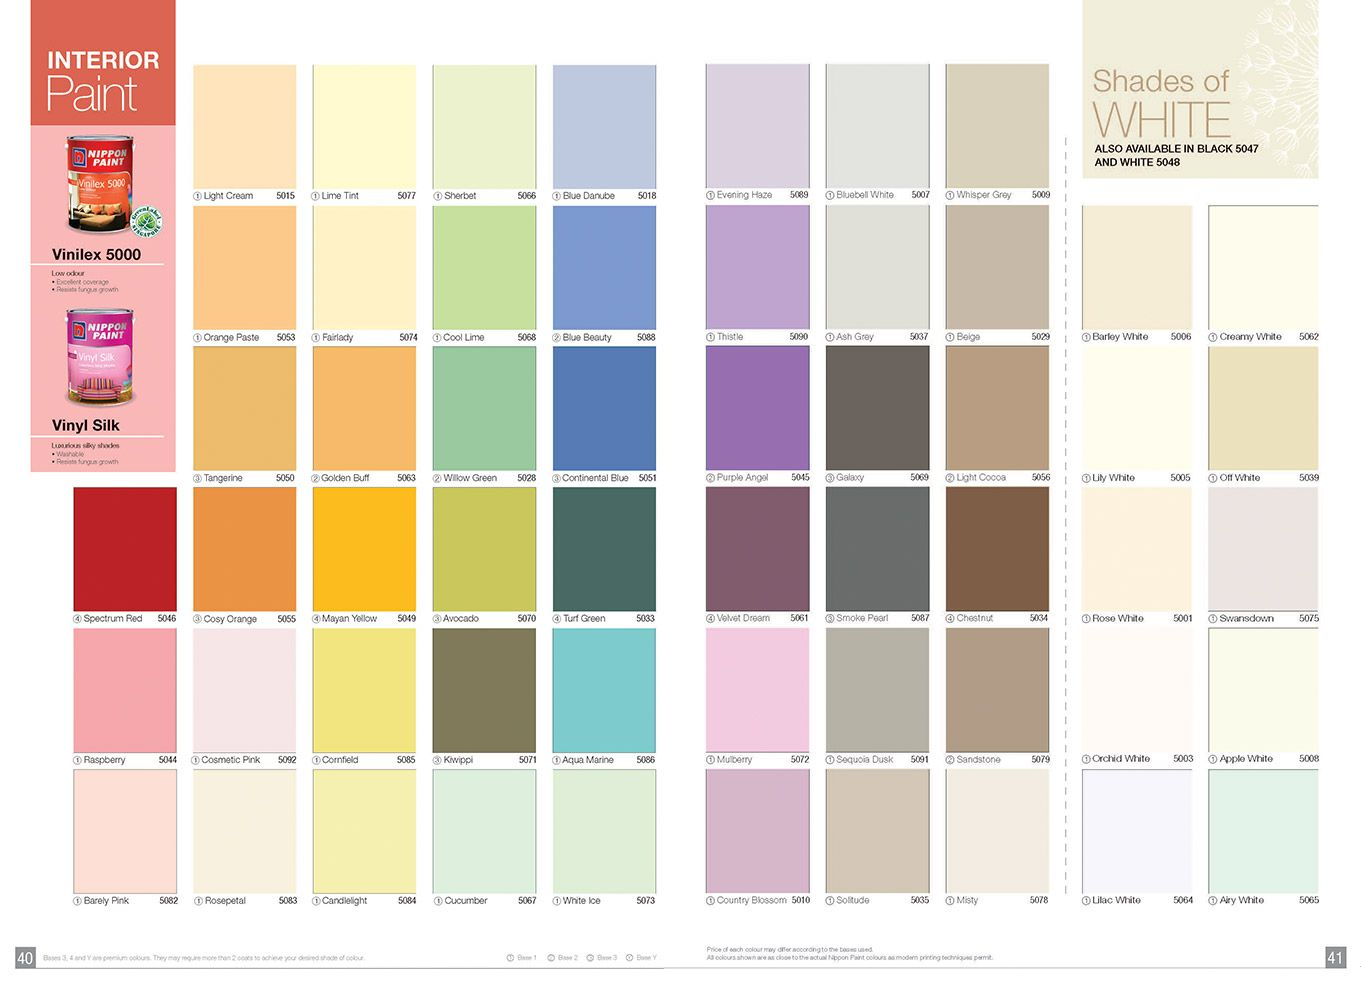 Nippon Paint Color Chart Interior Another Picture And Gallery About Exterior Wall Paints Fawn Brindle SherwinWilliams Colo